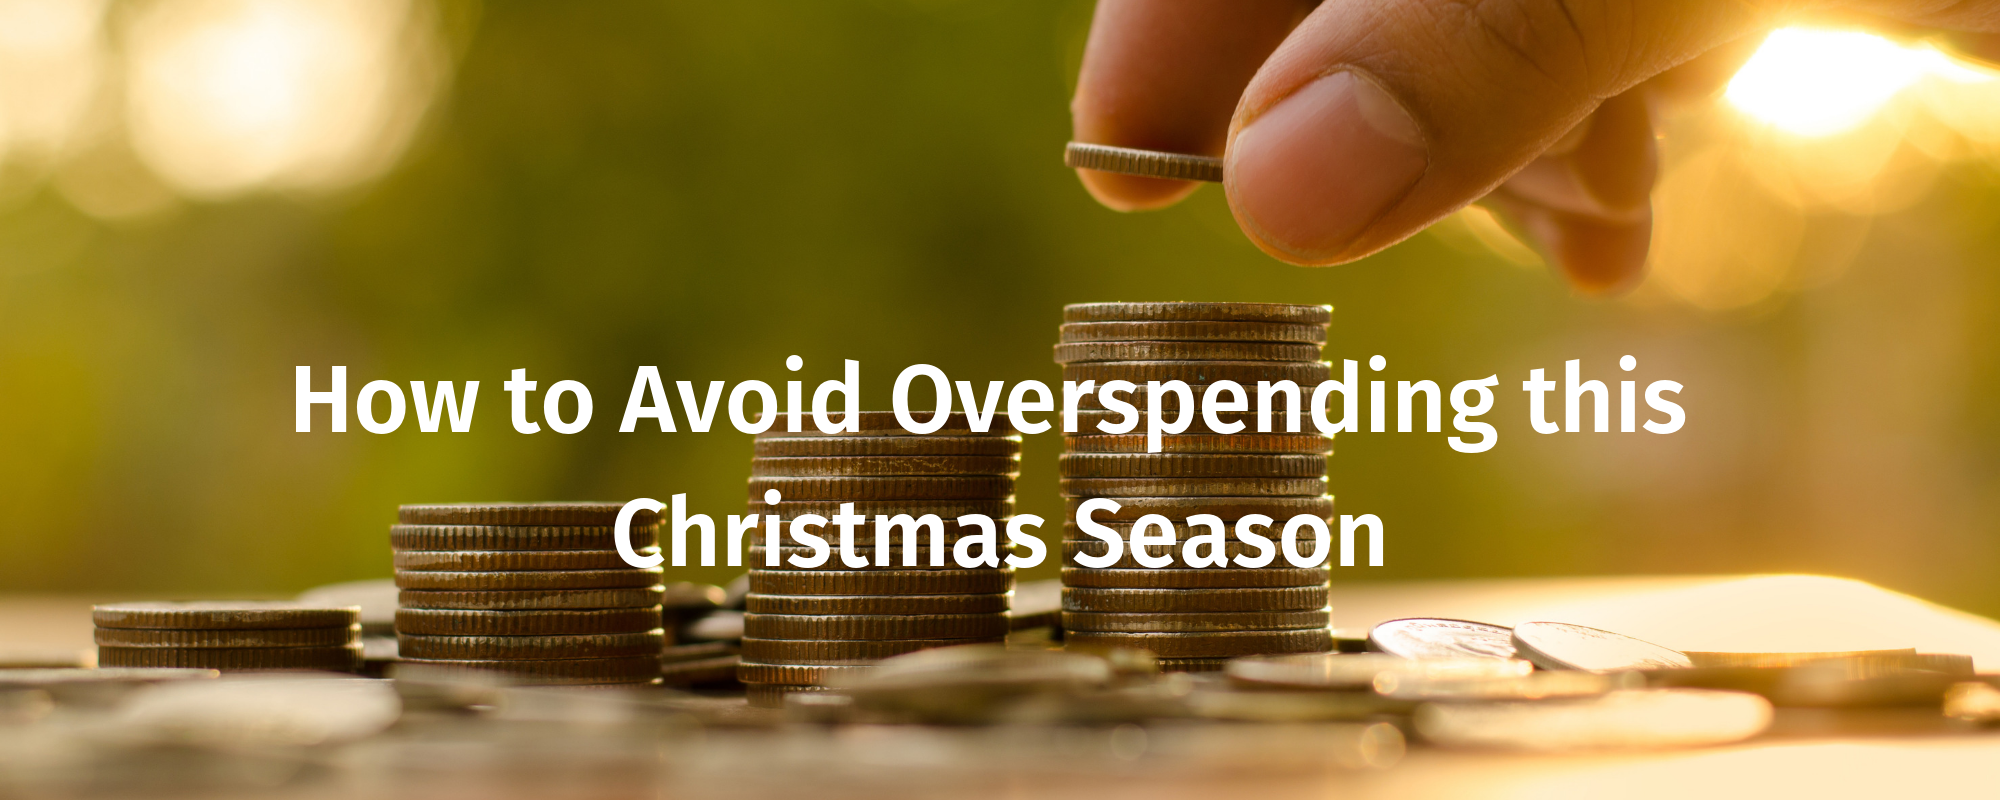 How to Avoid Overspending this Christmas Season